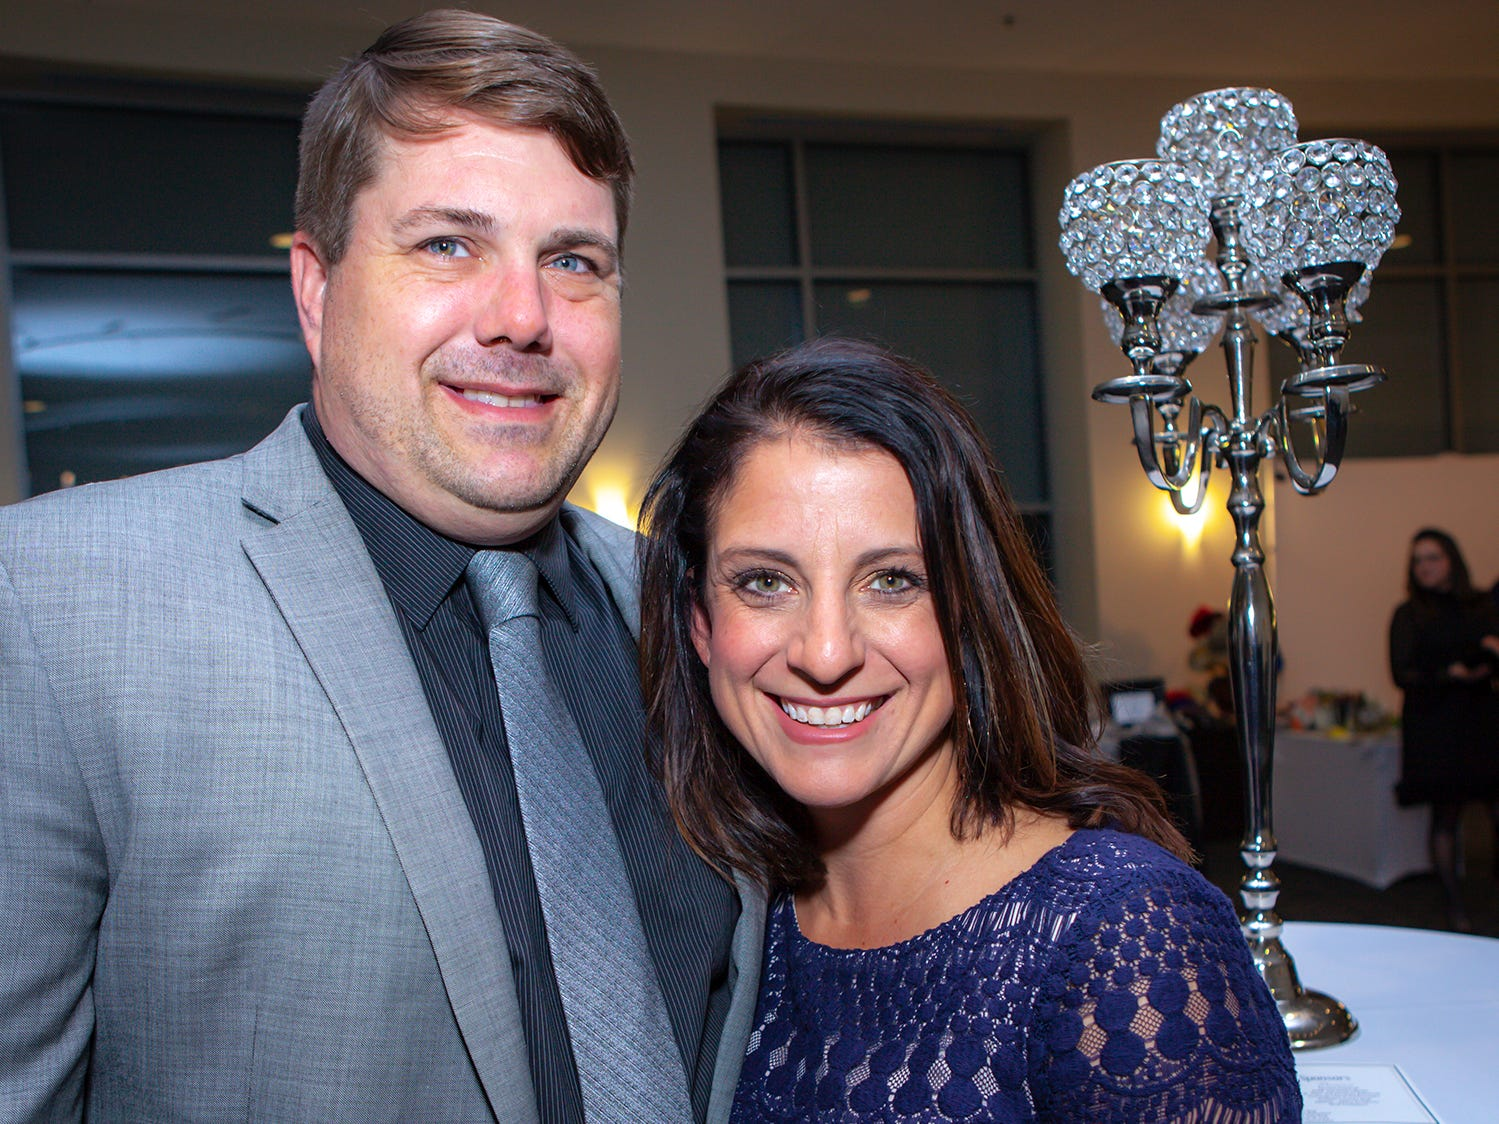 Ashton and Carrie Smith at the 2019 Excellence in Education Gala, hosted by the City Schools Foundation on Friday, Jan. 25, 2019 at Stones River Country Club in Murfreesboro.